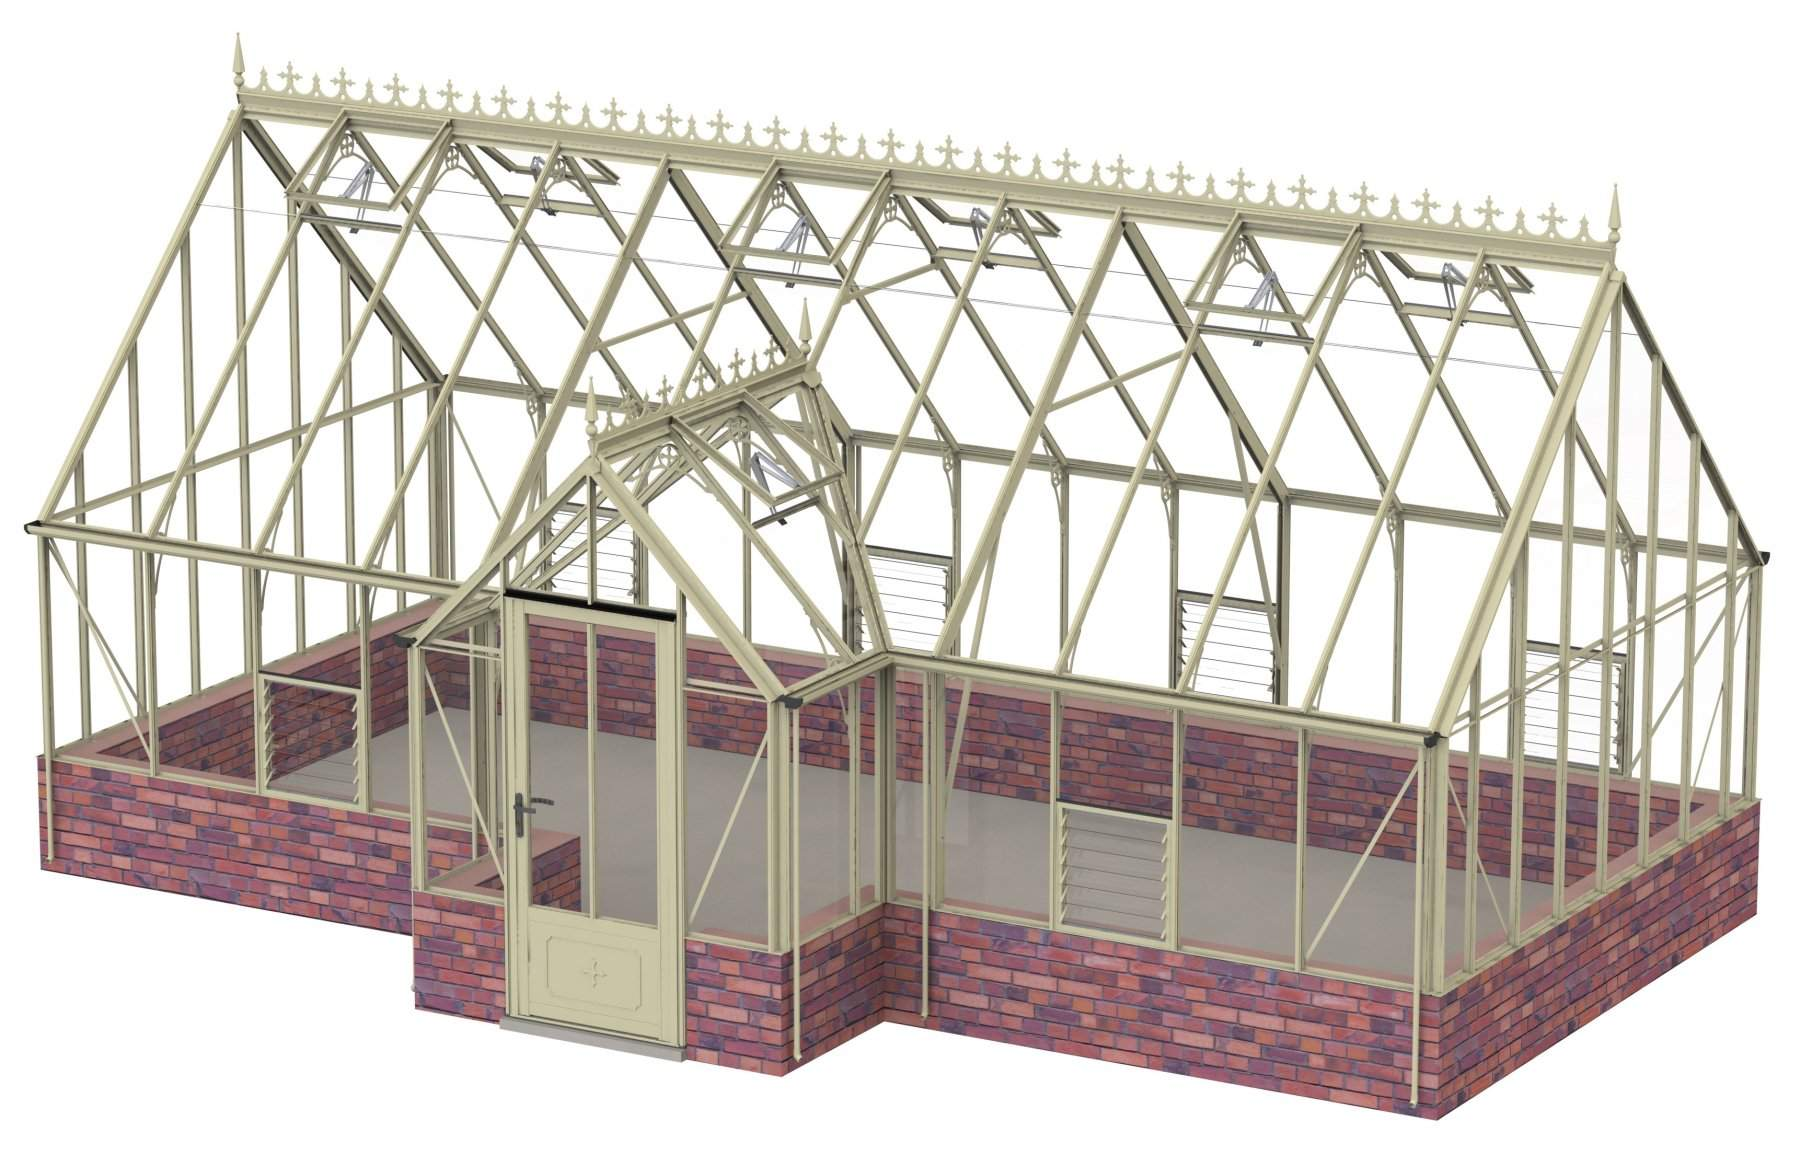 Robinsons Ramsbury in Ivory 14ft x 24ft8